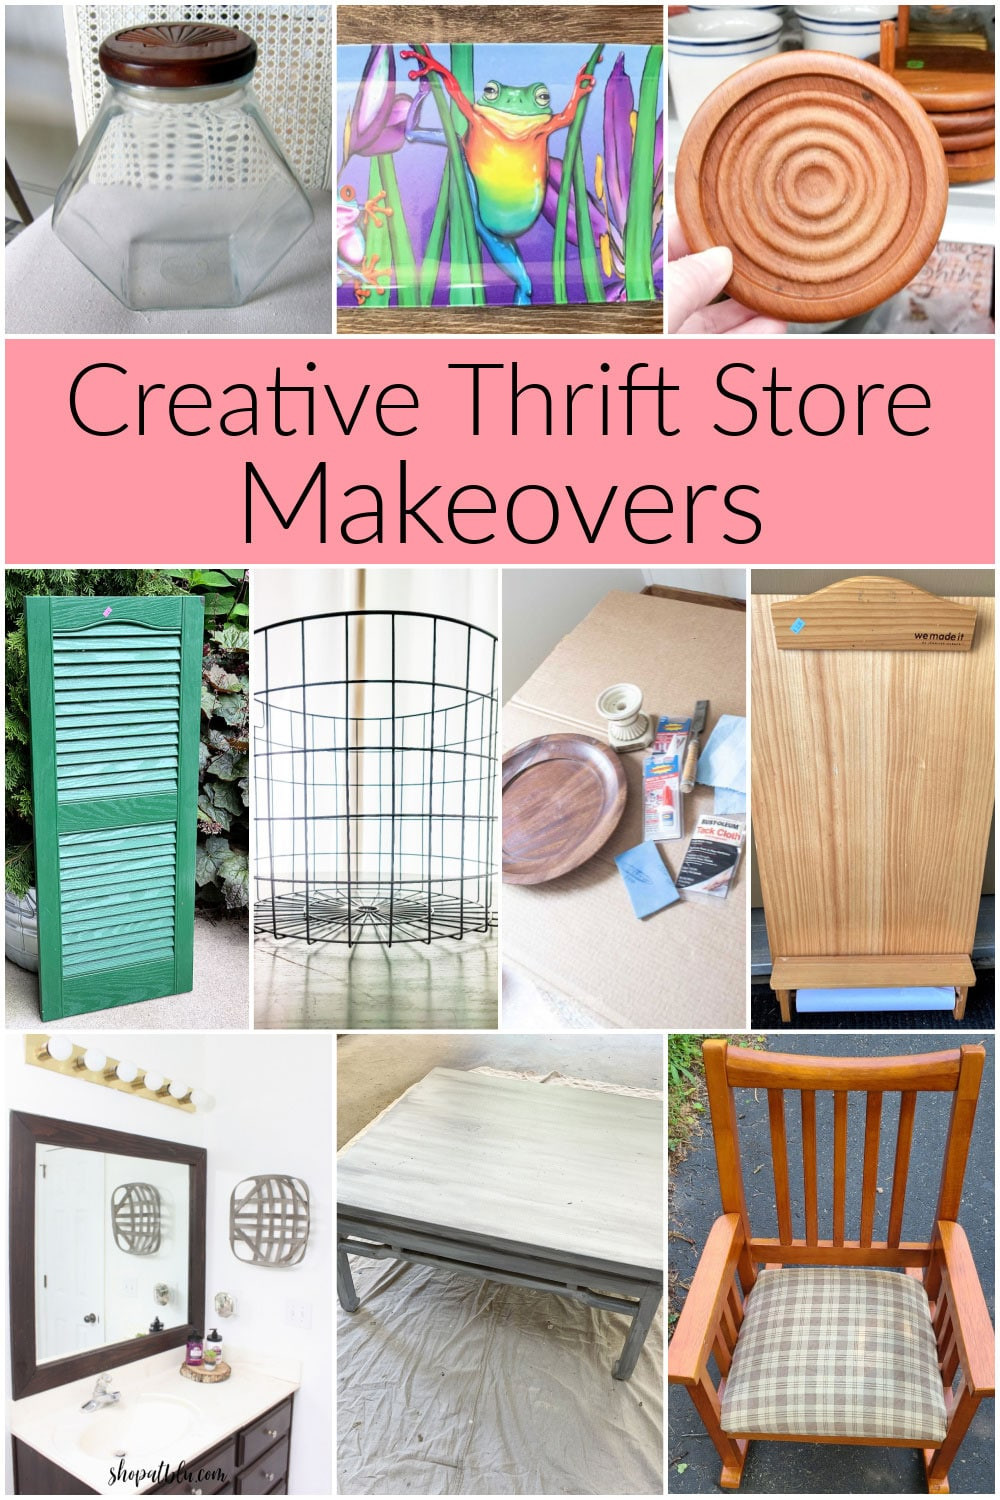 Creative thrift store makeovers.